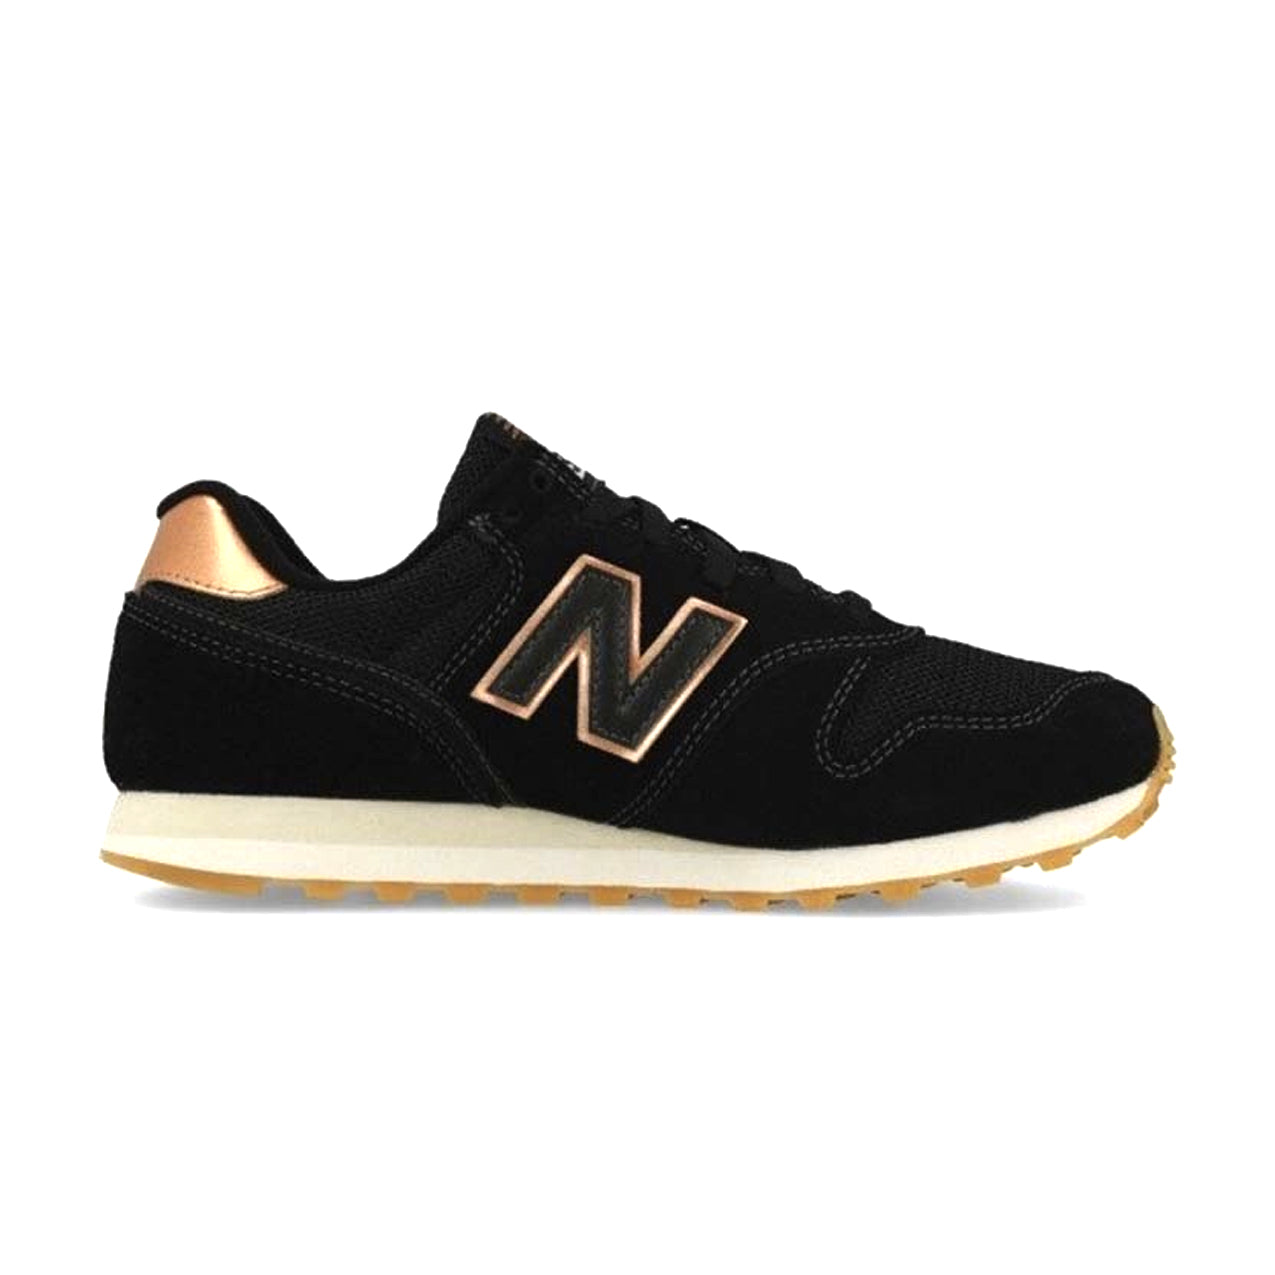 New Balance - Women's 373 - Black